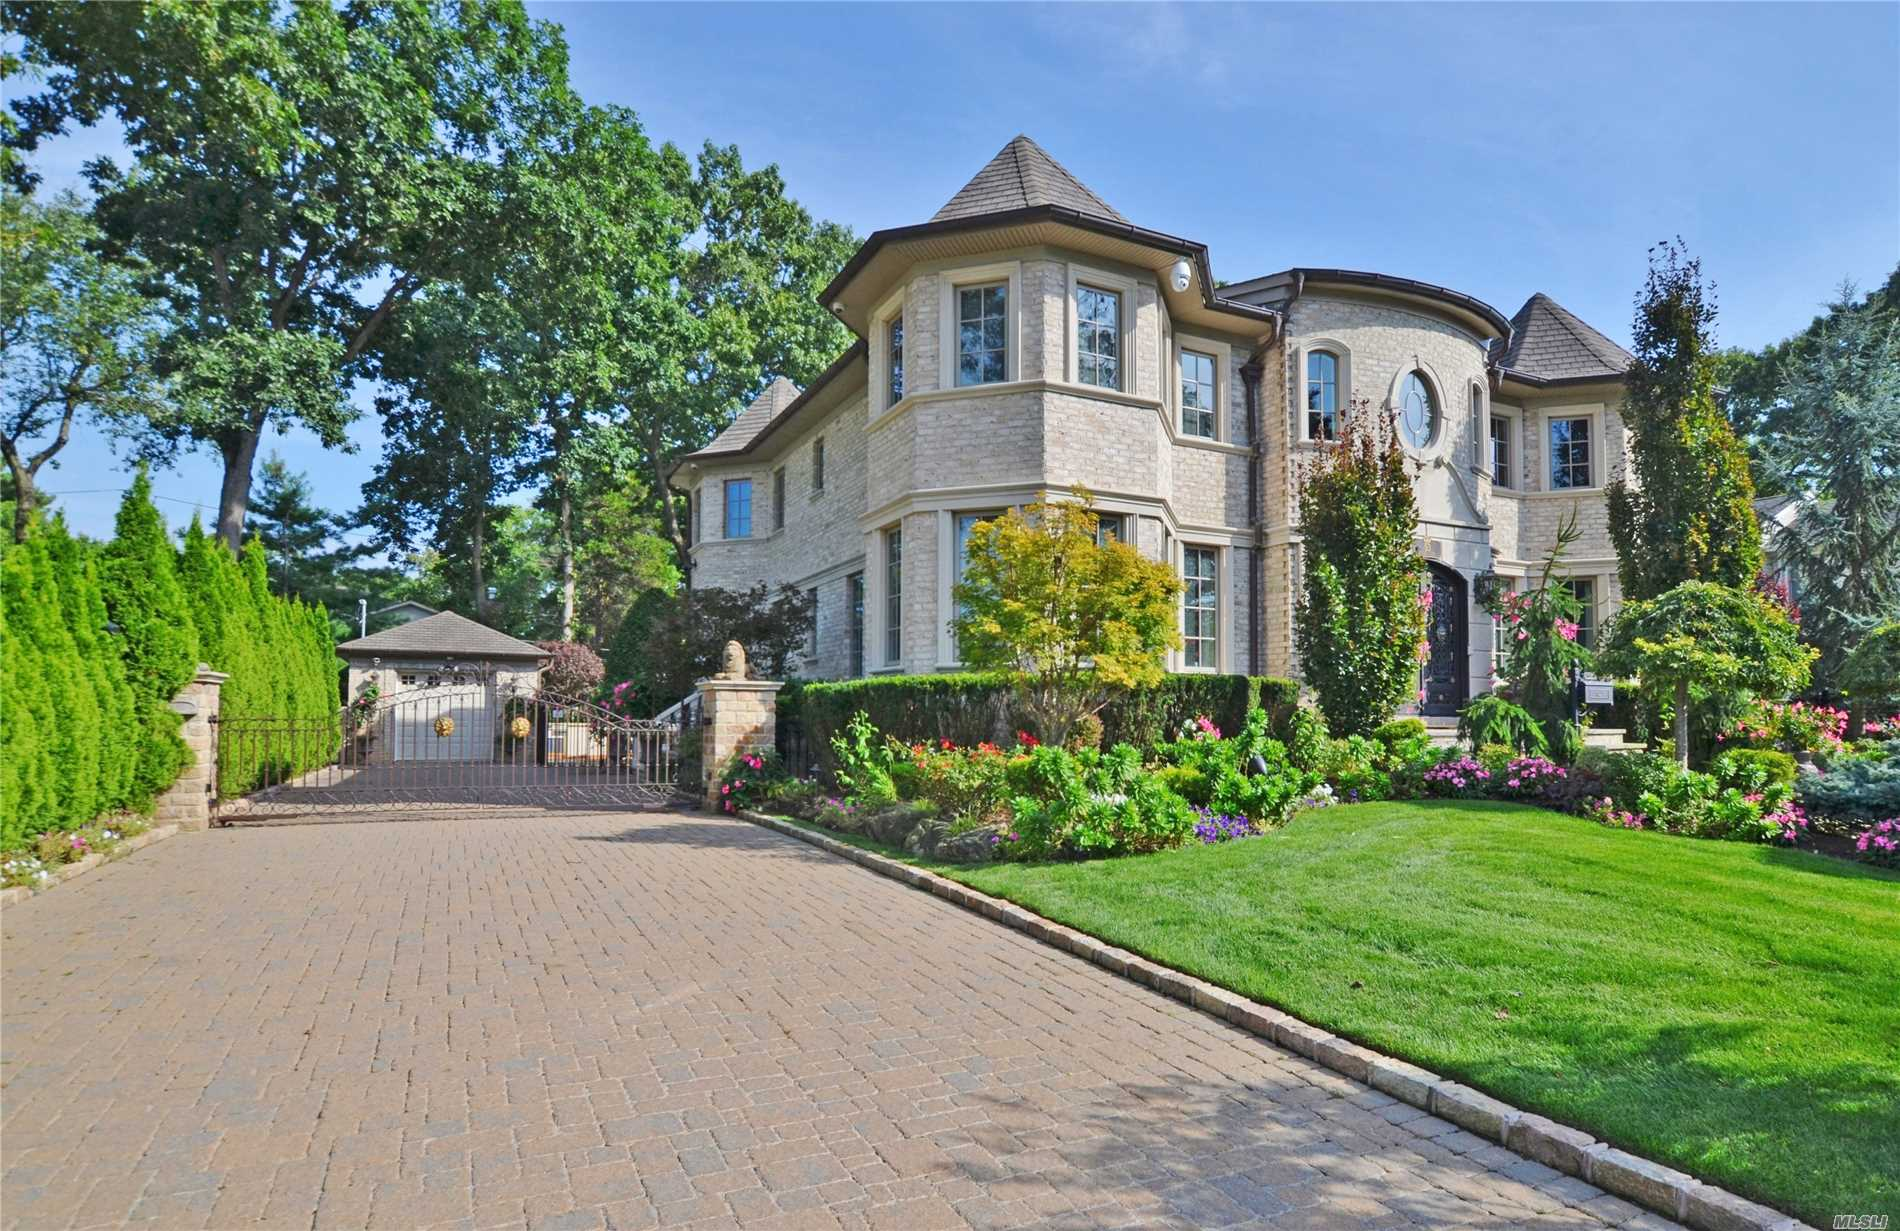 Spectacular 5BR Custom Home Sold Furnished/Turn-Key. Every Imaginable Amenity, Truly a Must See! (2020-2021 Hypothetical Taxes without Transitional Cap (Per County Reassessment): $47, 532.13)